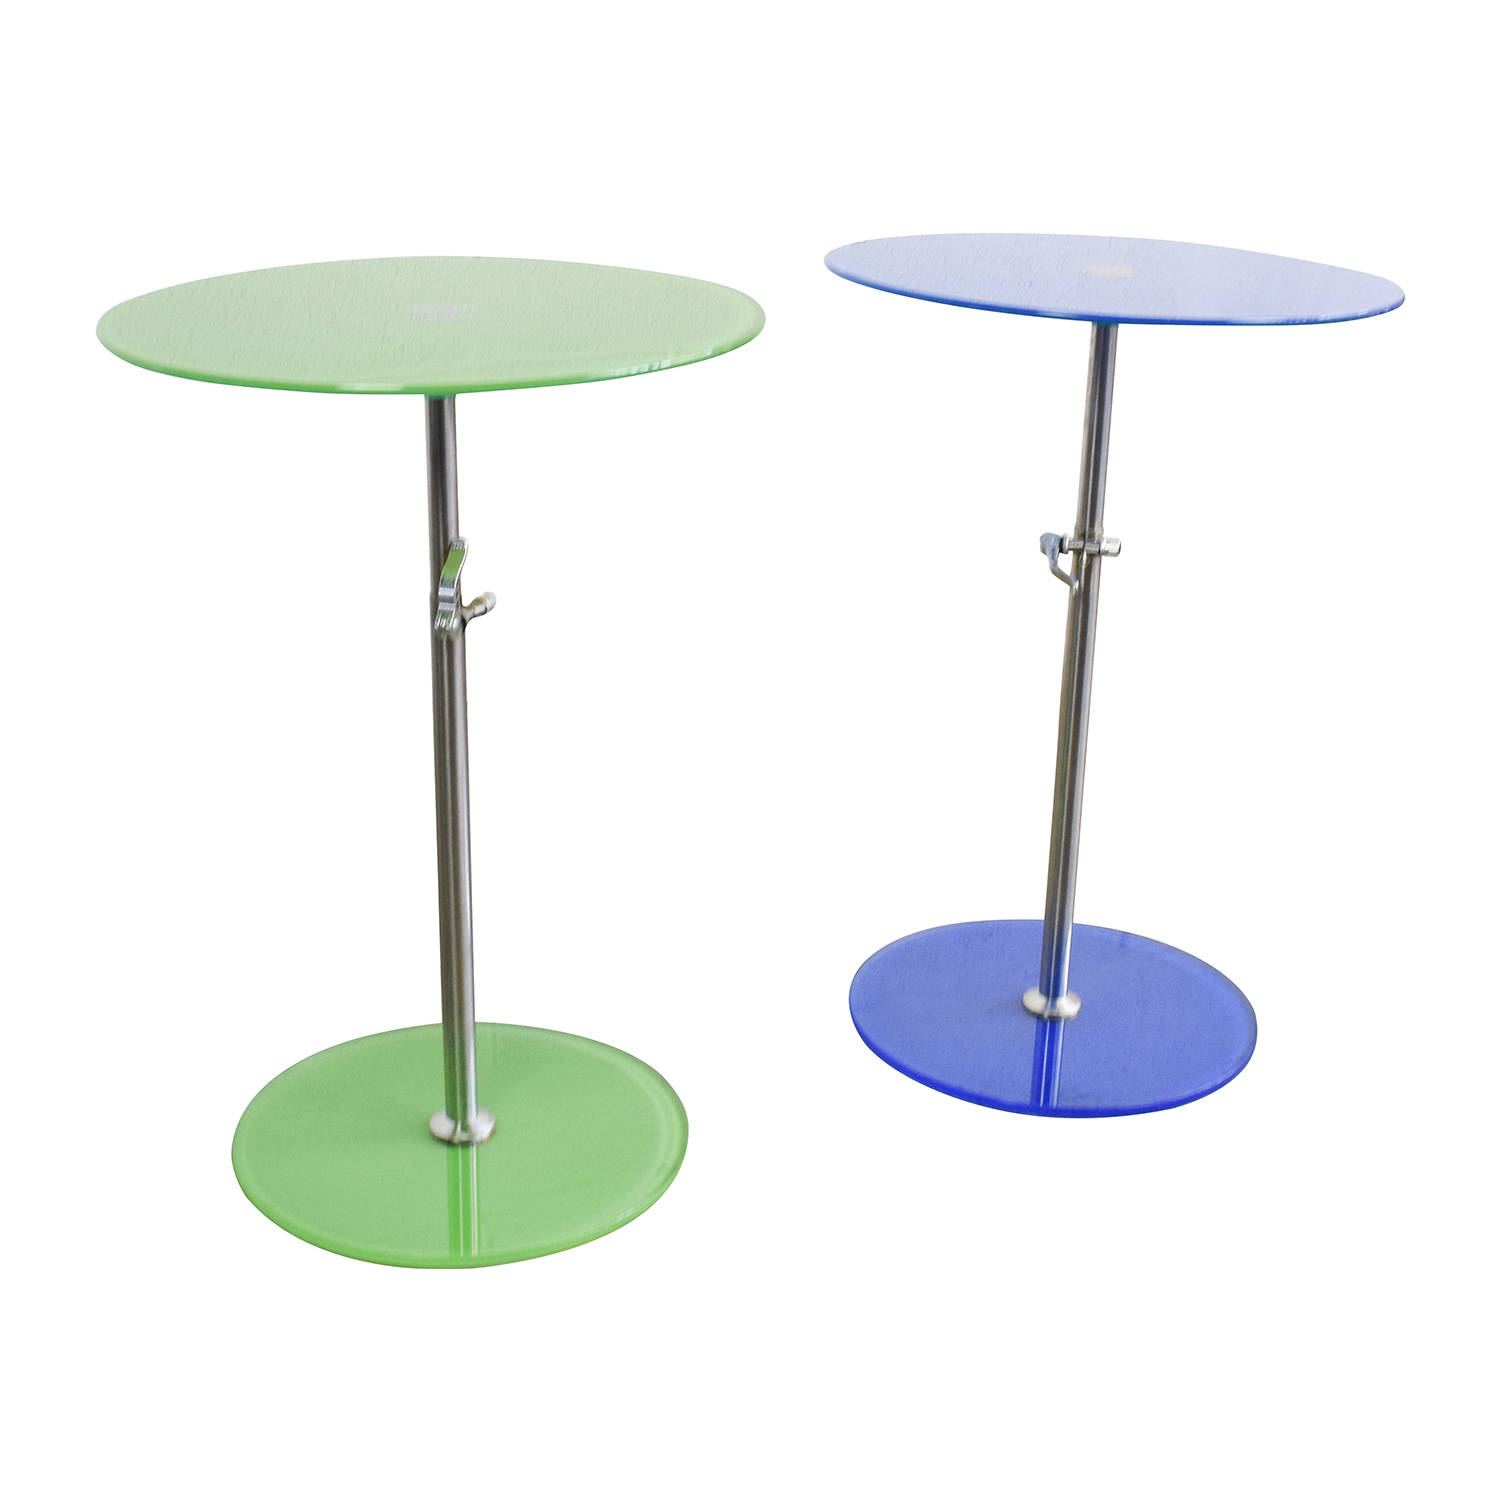 Round Glass Top End Tables 75 Off Modern Round Glass End Tables Tables